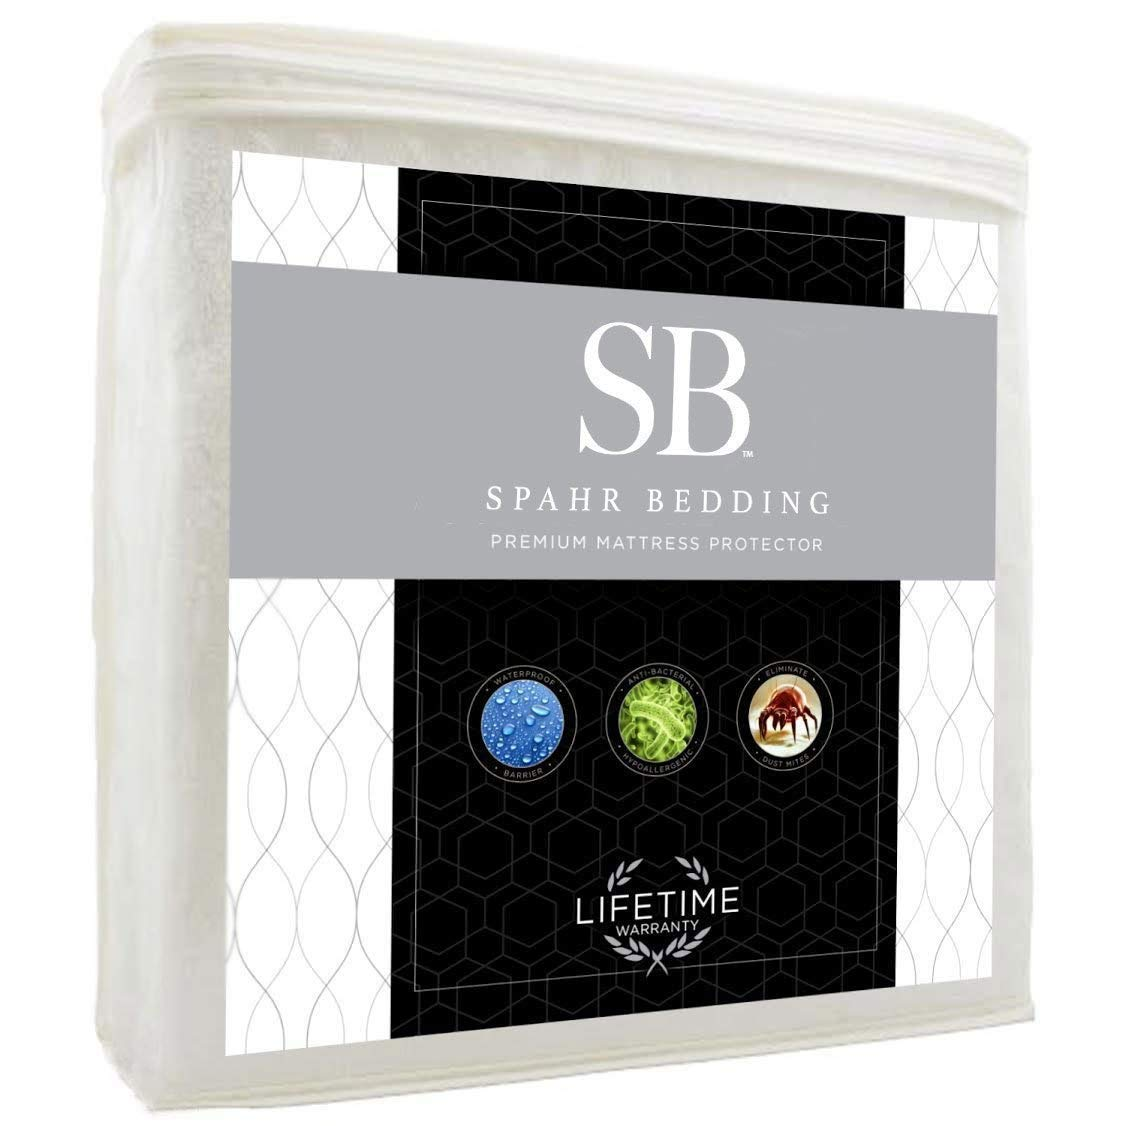 Spahr Bedding Waterproof Mattress Protector - Hypoallergenic Mattress Cover - Cotton Terry Bed Topper for Dust Mite, Allergy Protection - Noiseless, Cool-Sleeping, Breathable - Twin XL Size SB Spahr Bedding